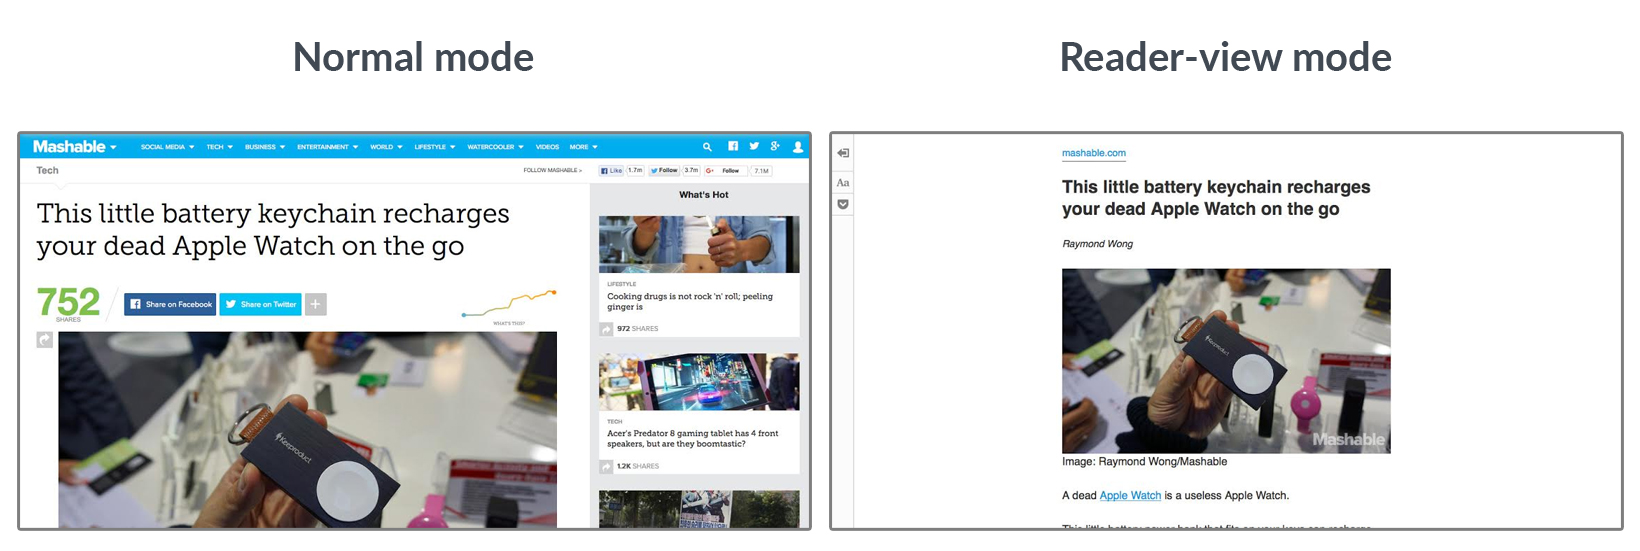 Reader view mode in browser